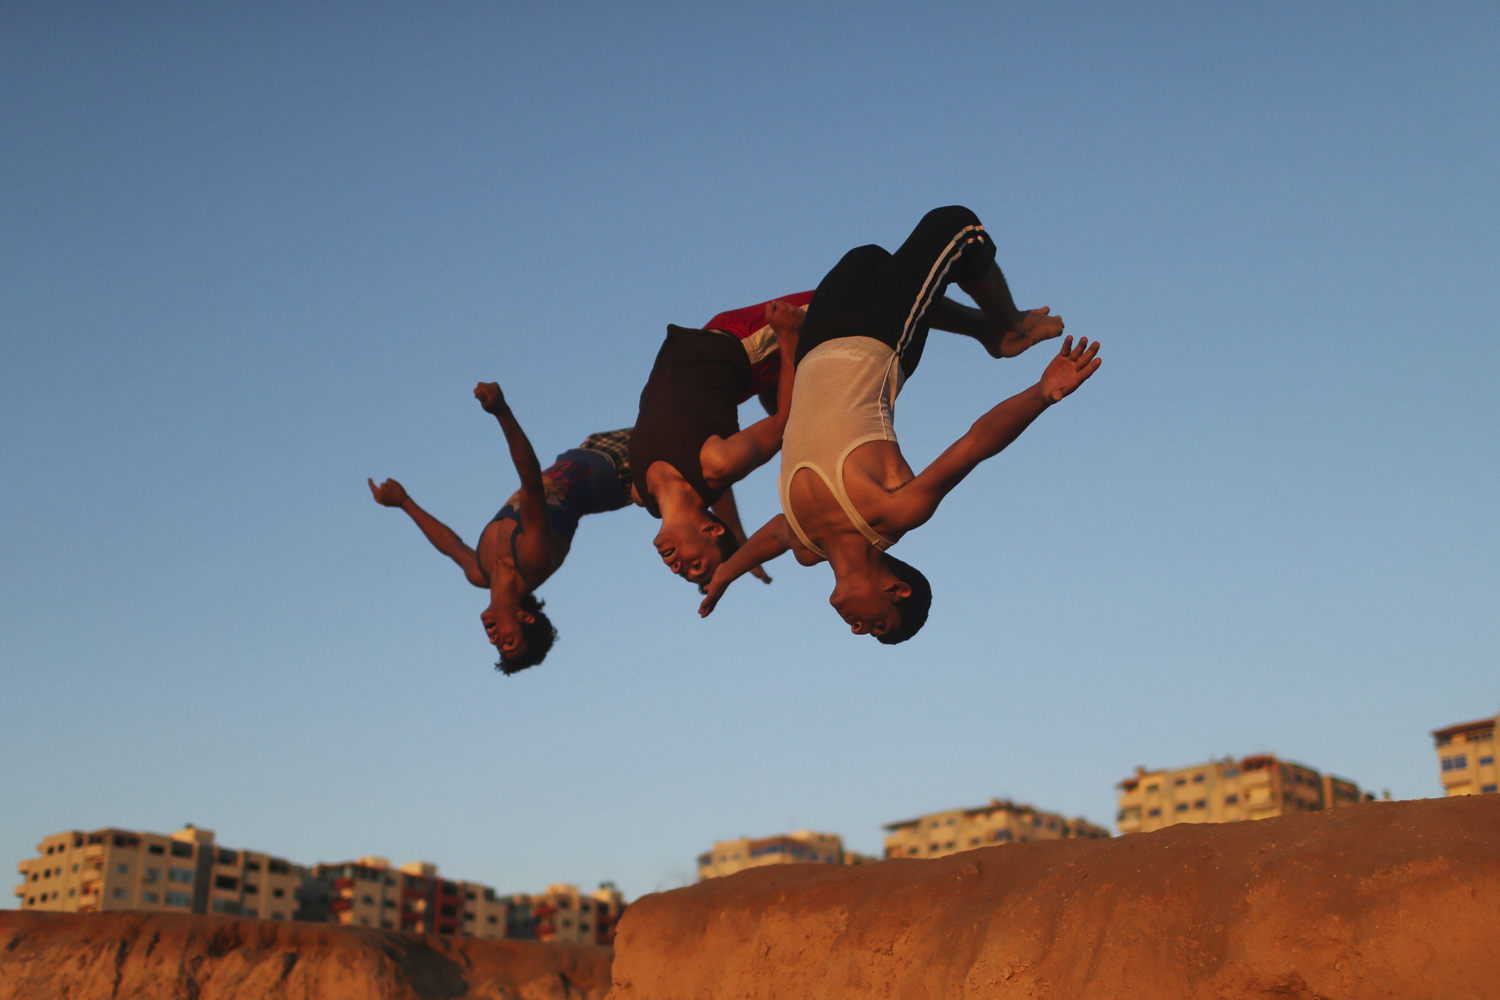 Palestinian youths practice their parkour skills at the Shati refugee camp in Gaza City on April 27, 2014.